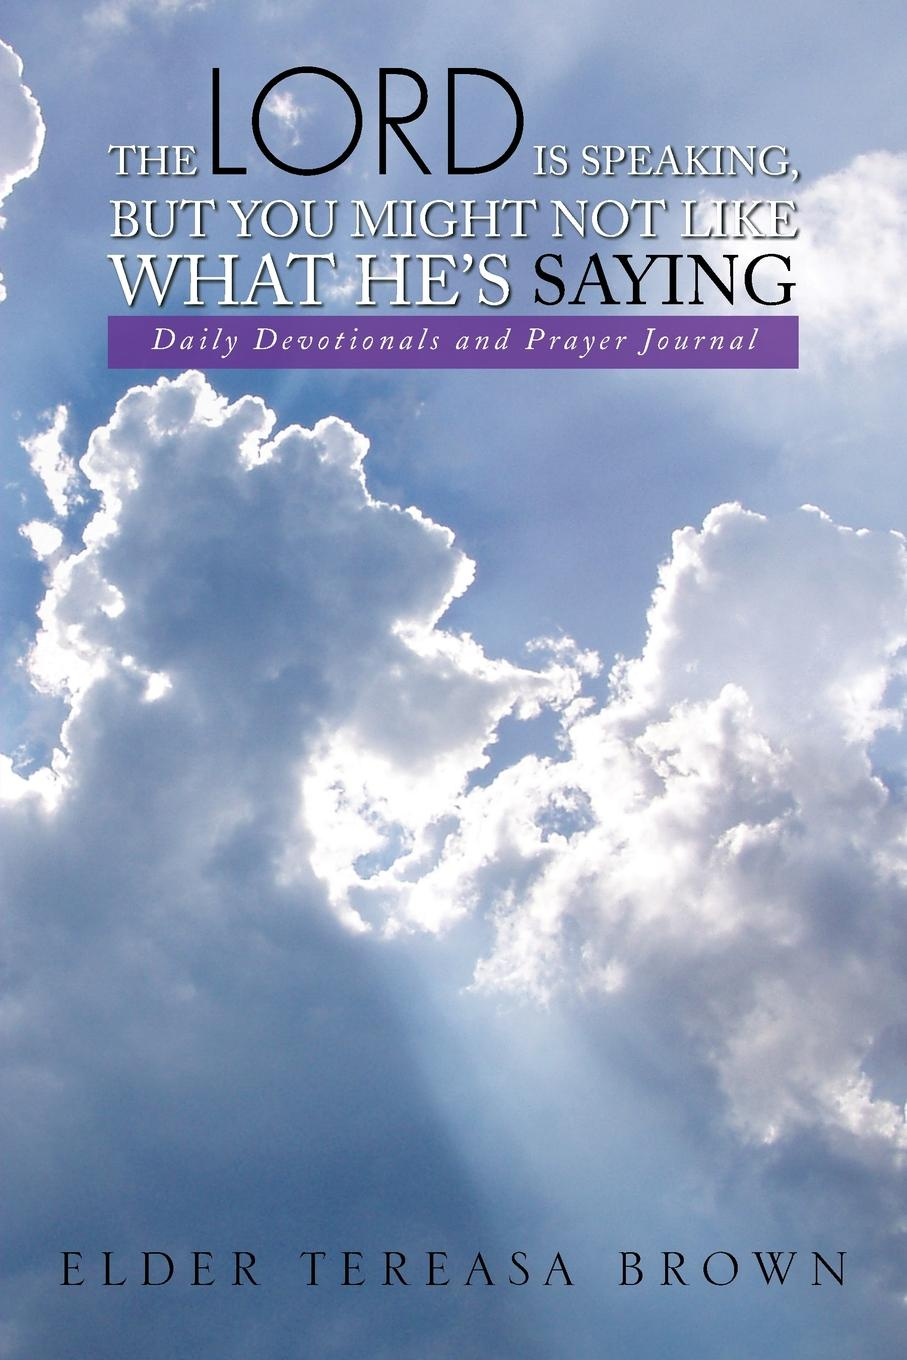 Tereasa Brown The Lord Is Speaking, But You Might Not Like What He's Saying. Daily Devotionals and Prayer Journal what the spirit is saying to the churches